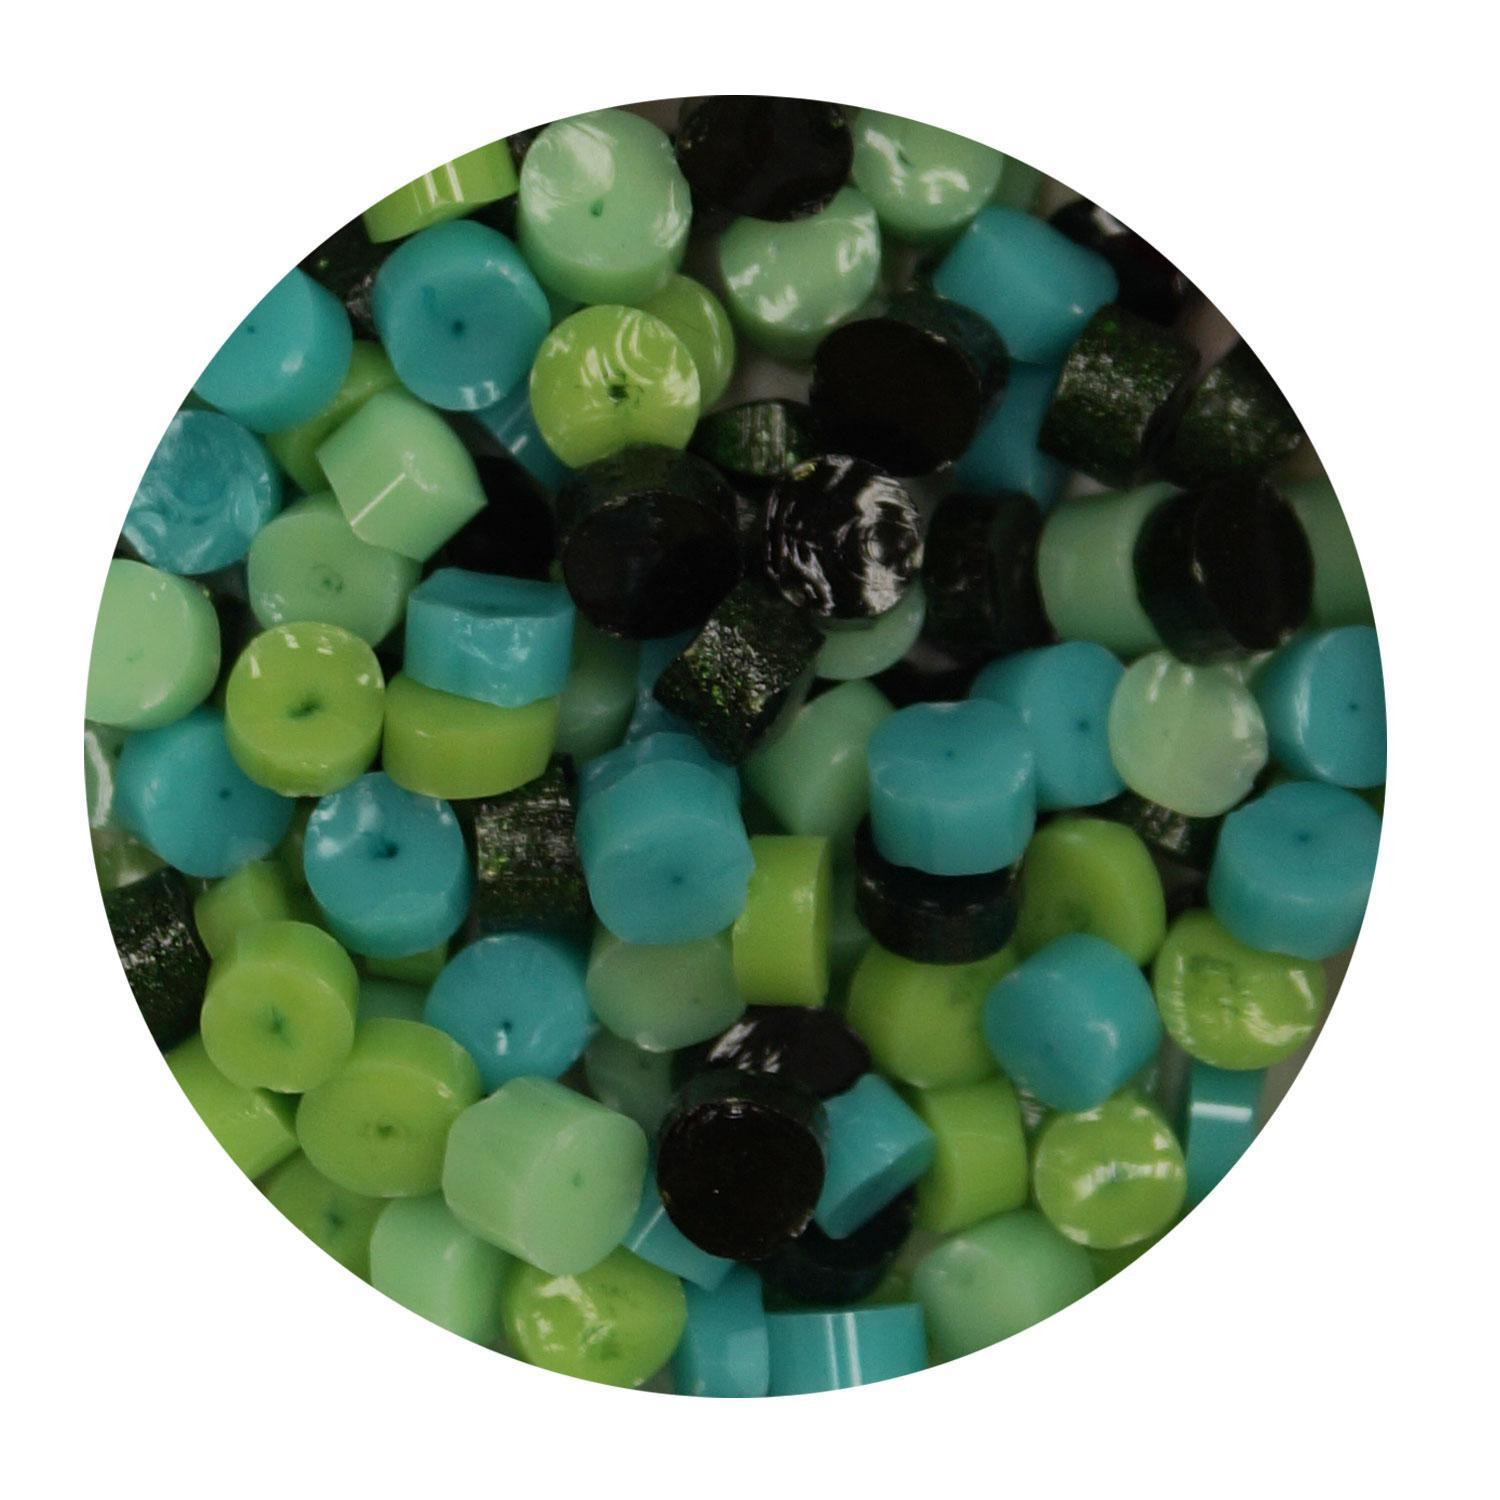 Minty Dots Assortment - 96 COE